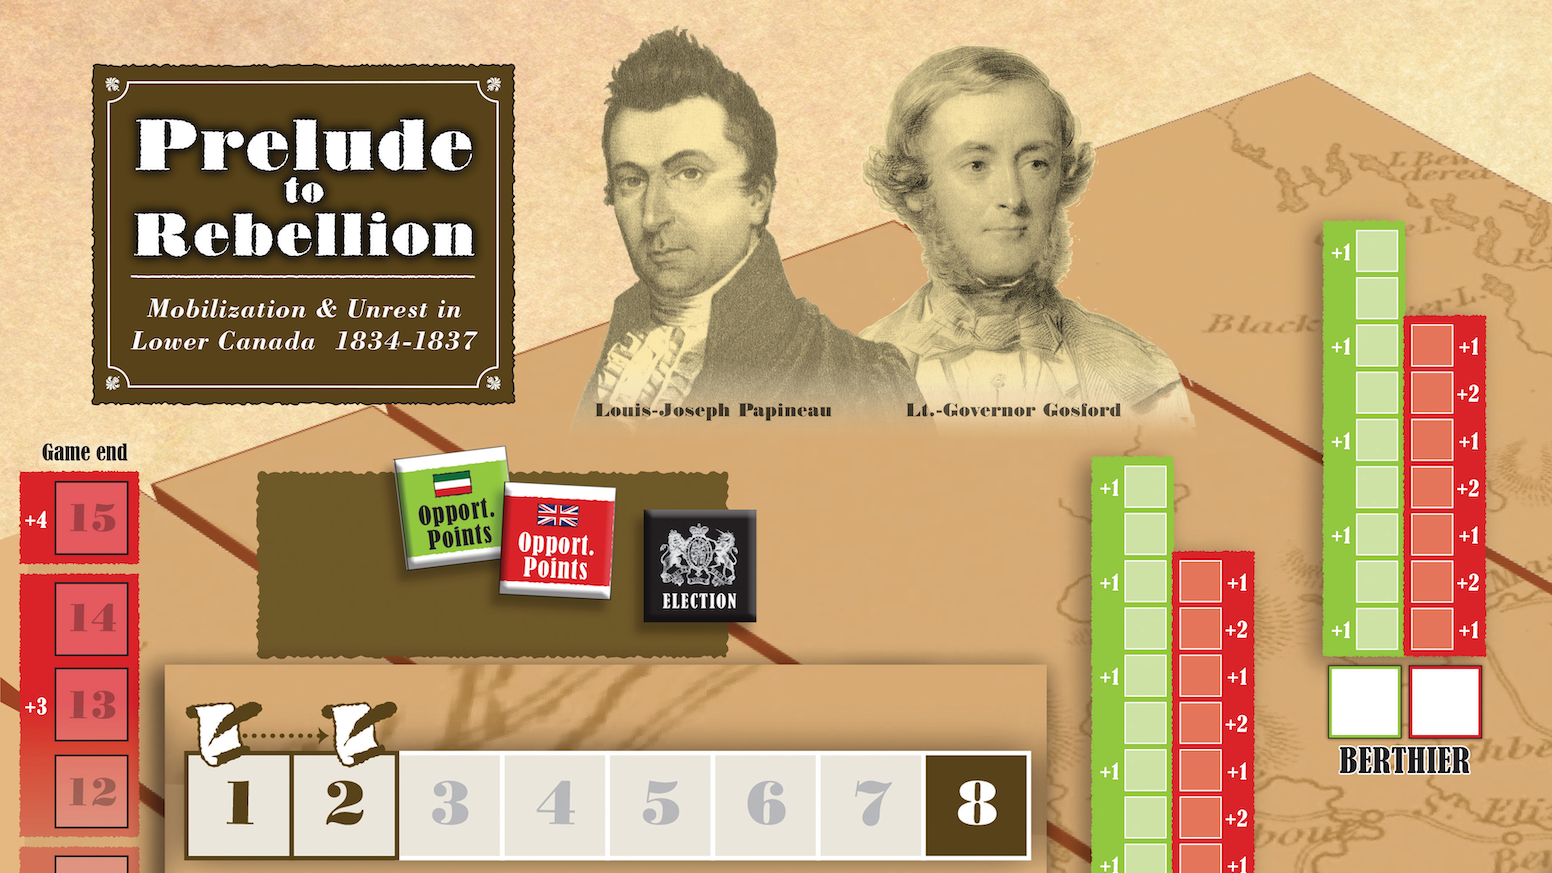 Card-driven game on the events leading to the uprisings of Lower Canada in 1834-1837